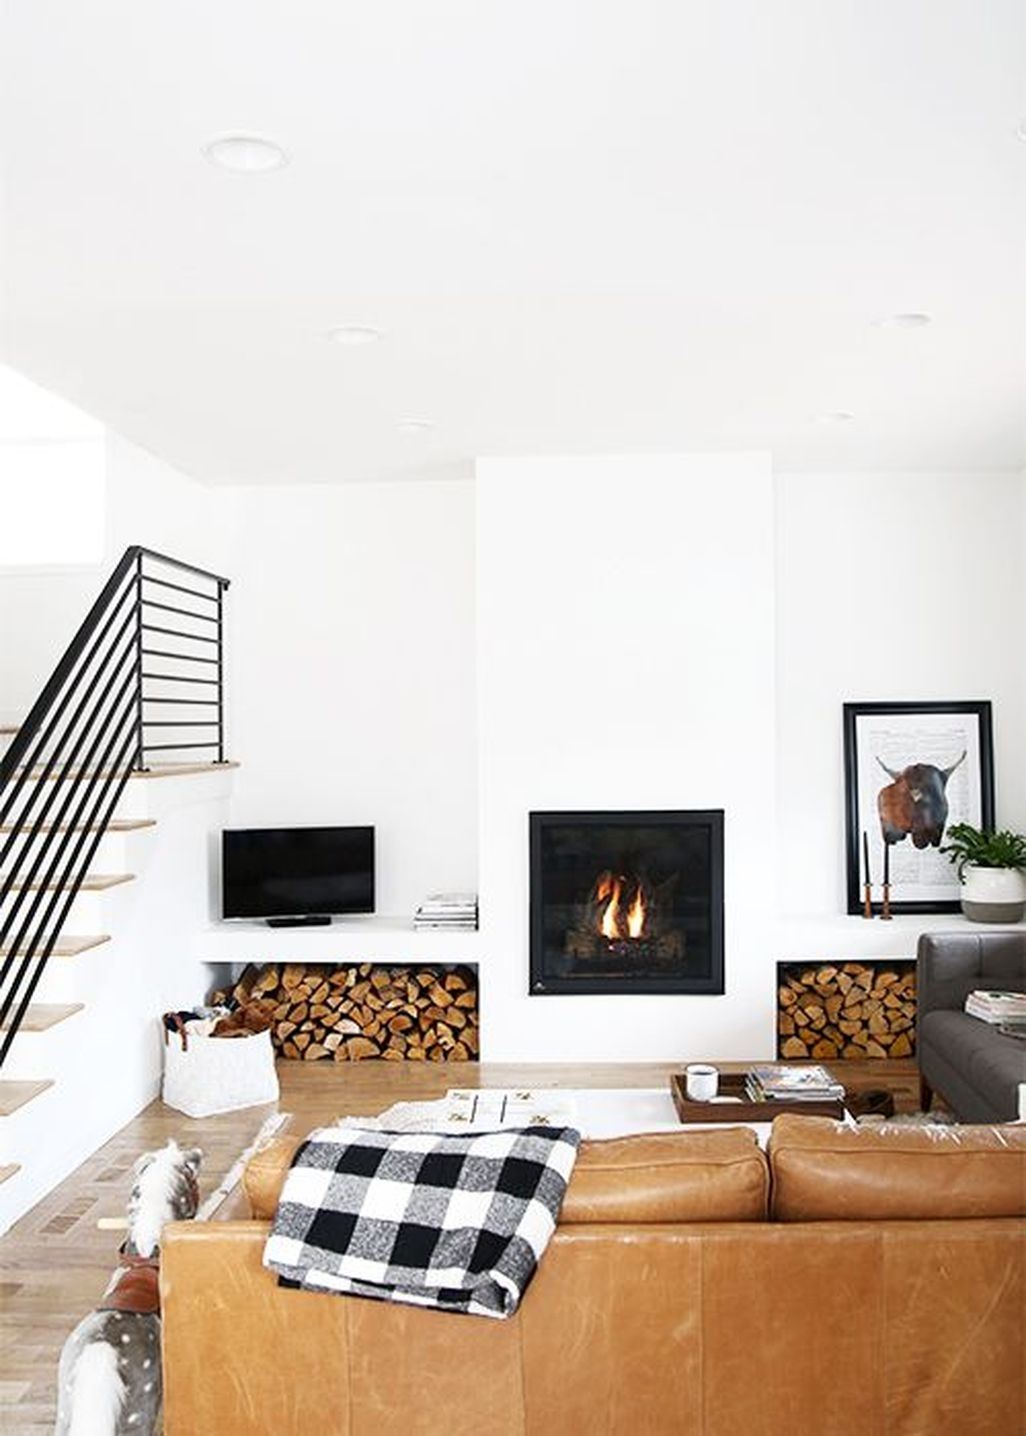 Inspiring Corner Fireplace Ideas In The Living Room 13